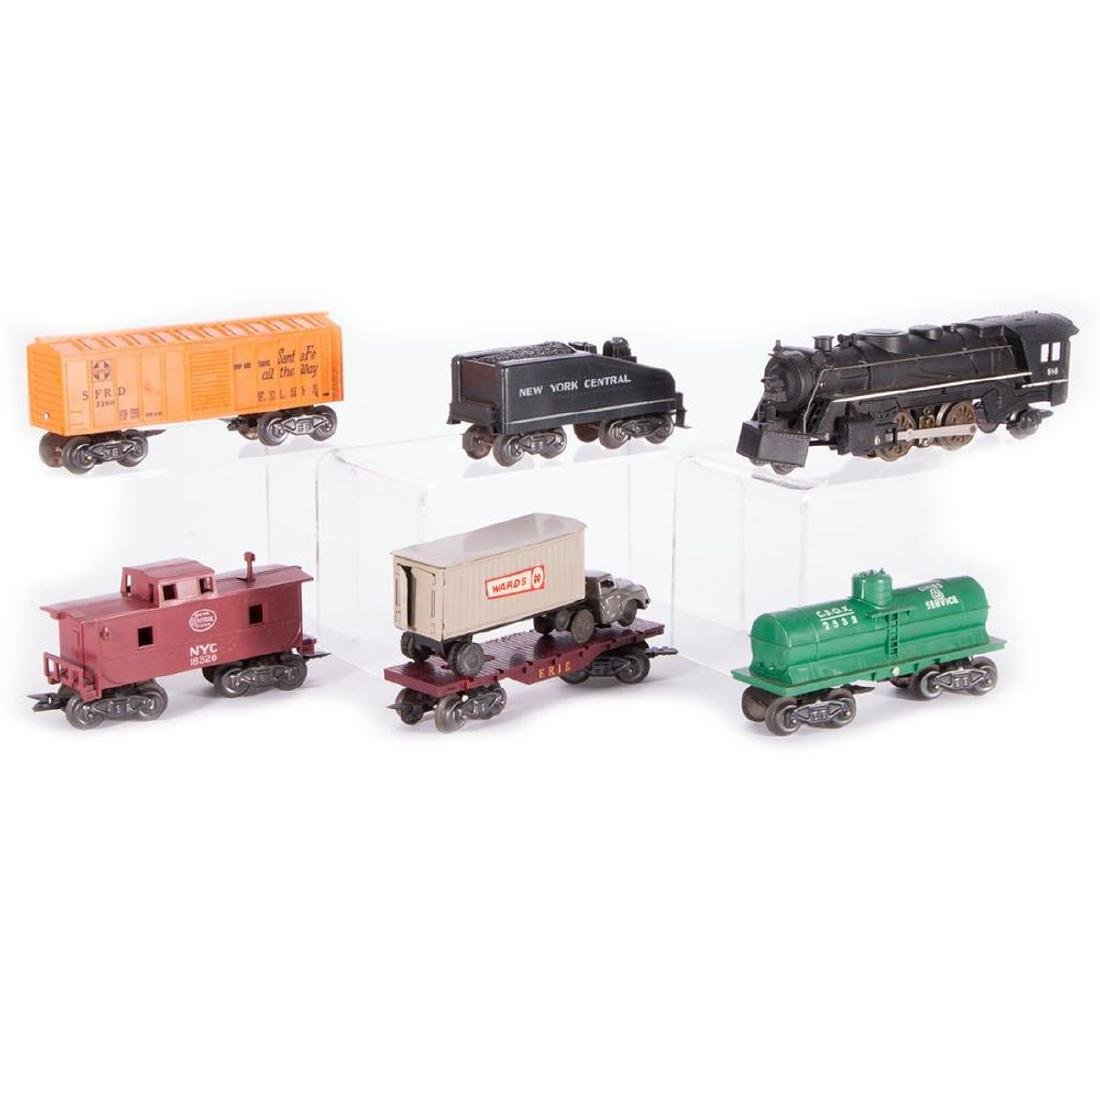 Marx O Gauge Smoking Steam Engine w/Freight Boxed Set